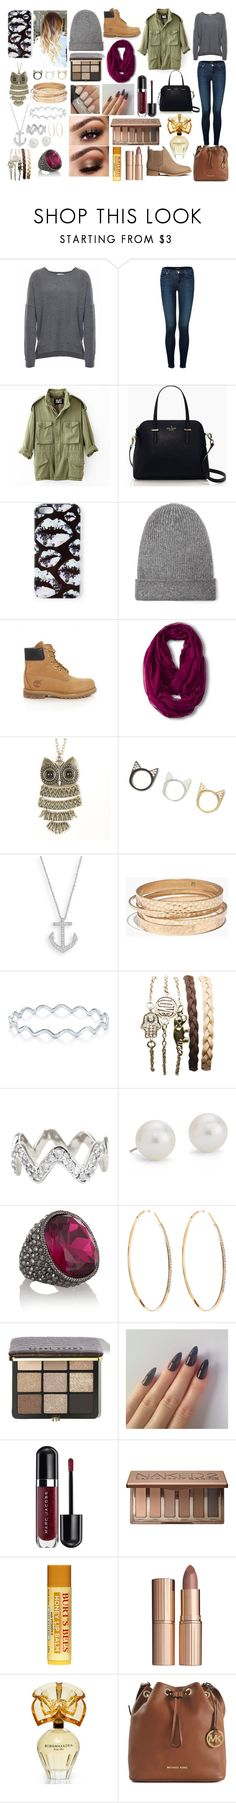 """""""Khadija"""" by seyna-niang-seck ❤ liked on Polyvore featuring Velvet, J Brand, NLST, Kate Spade, Markus Lupfer, Helmut Lang, Timberland, Merona, Madewell and BERRICLE"""